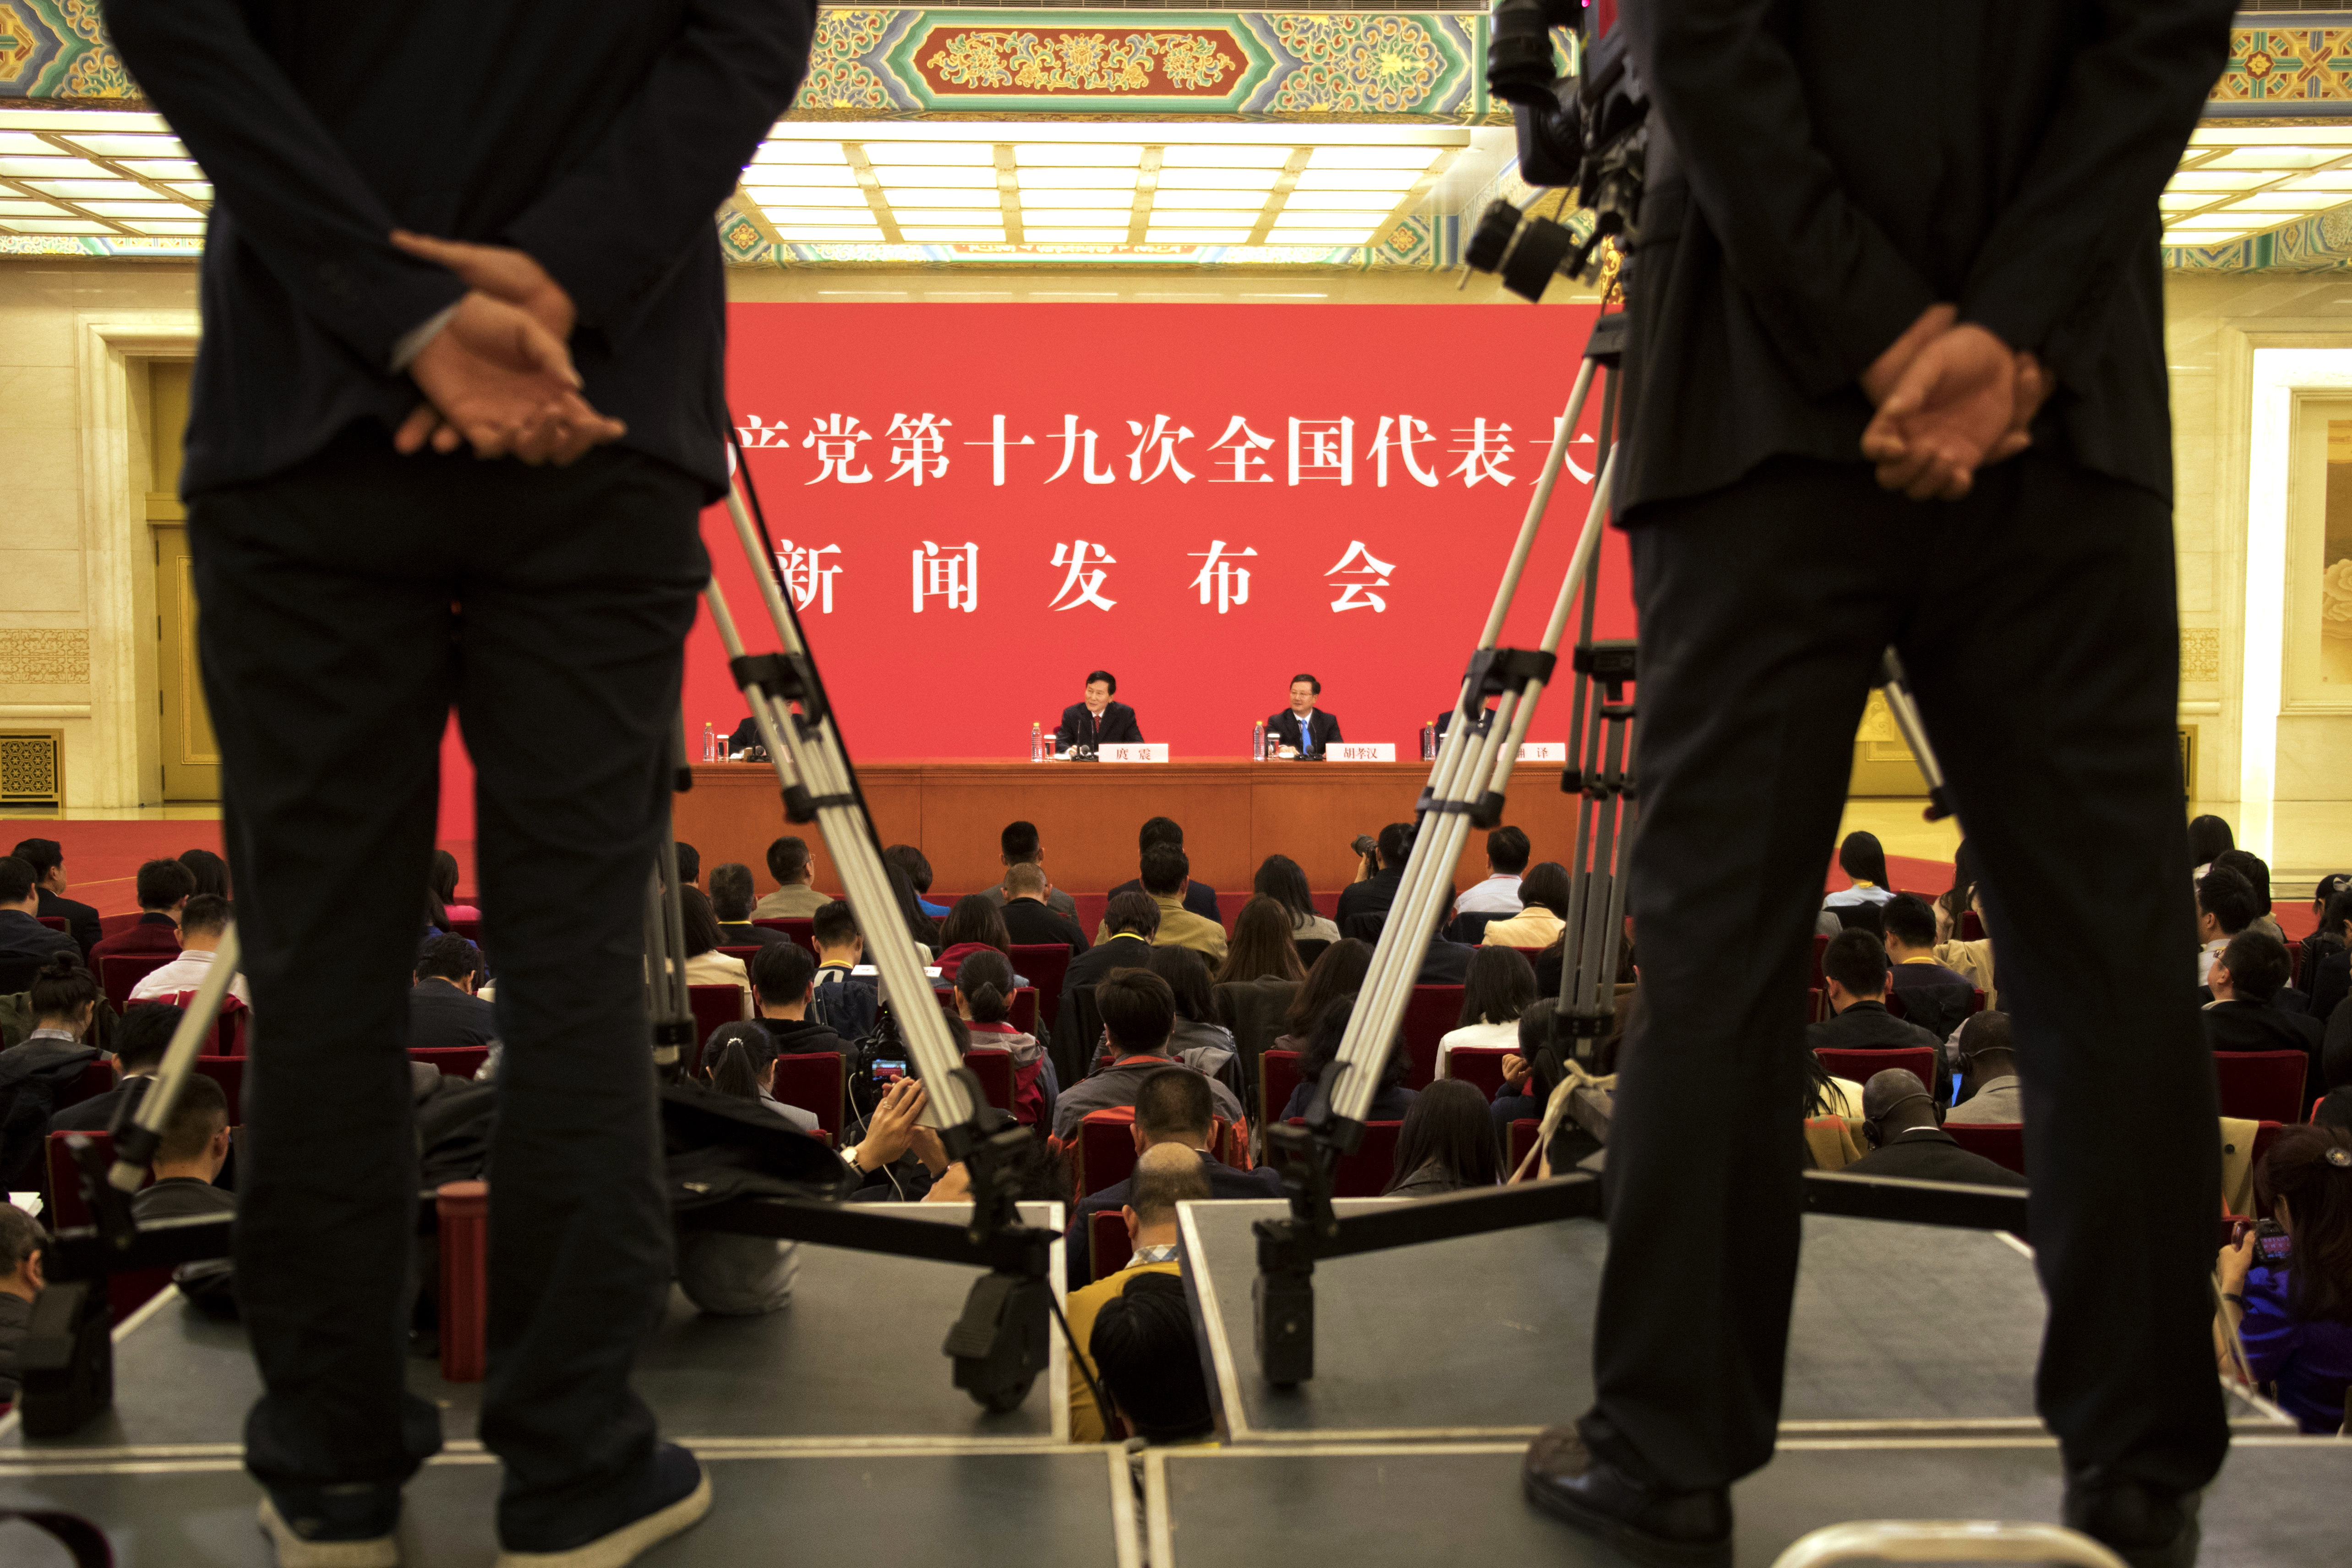 Tuo Zhen, center back, spokesperson for the 19th National Congress of the Communist Party of China speaks during a press conference at the Great Hall of the People in Beijing, China, Oct. 17, 2017.